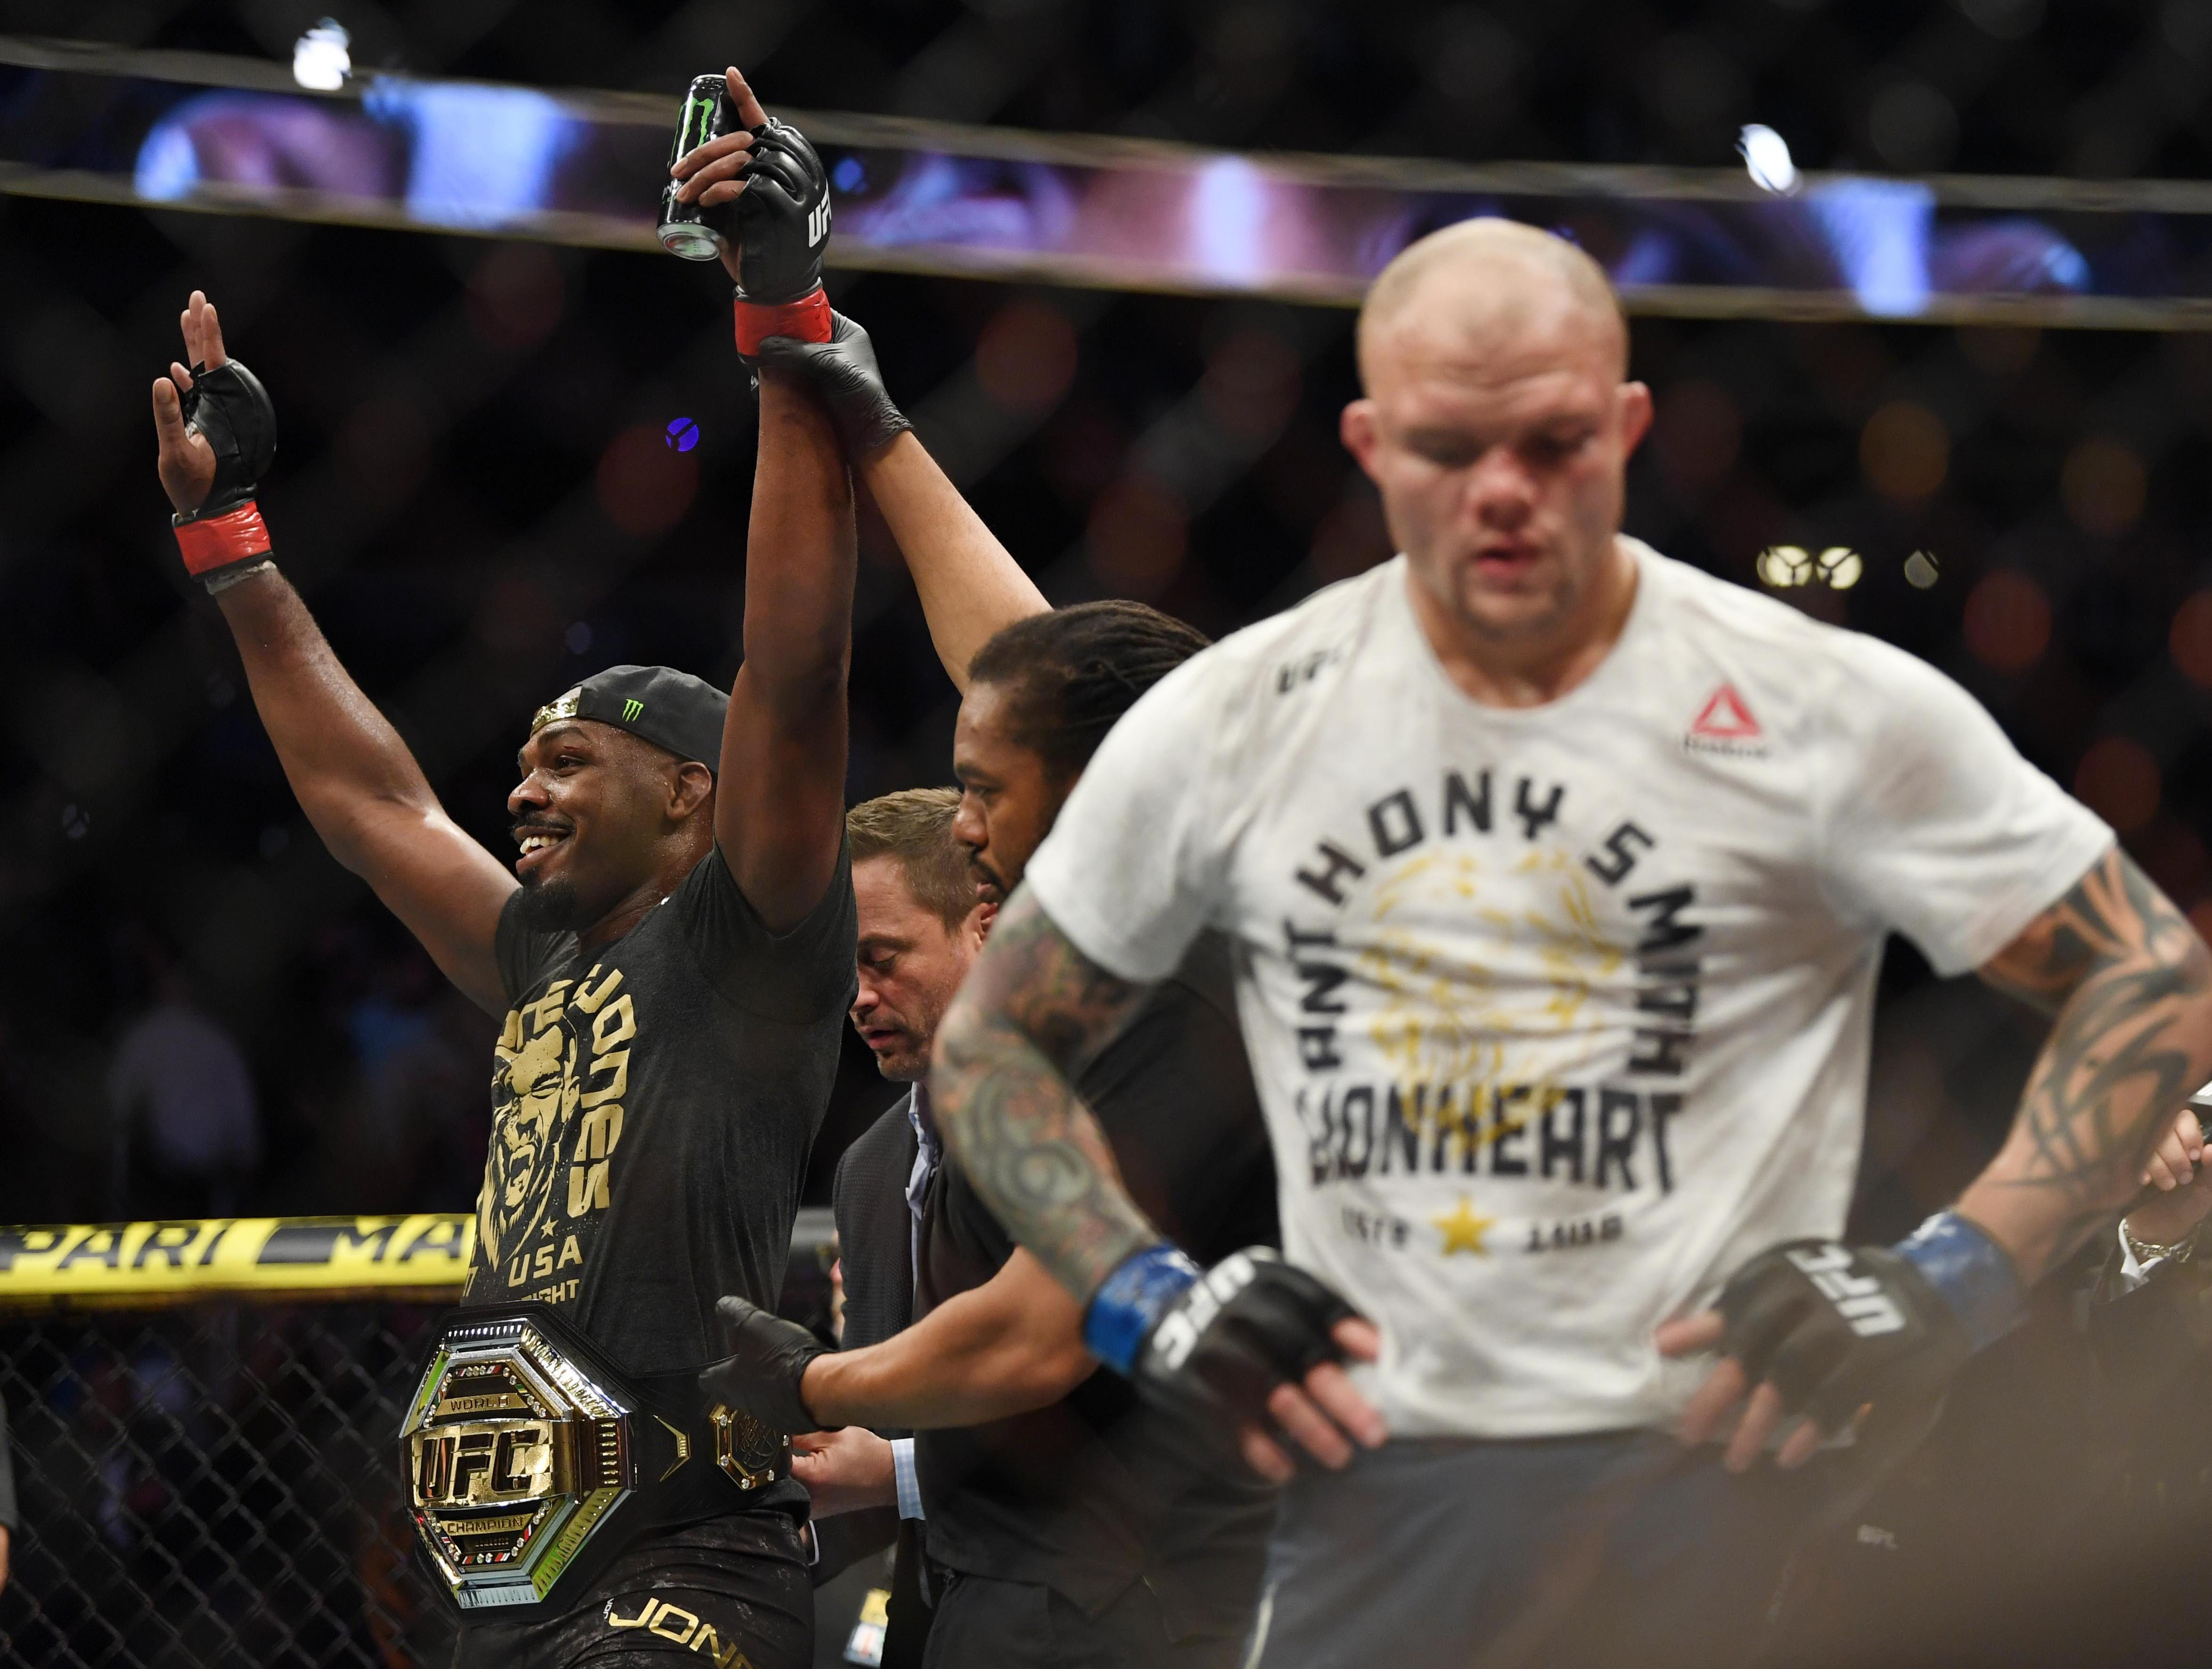 Mar 2, 2019; Las Vegas, NV, USA; Jon Jones (red gloves) with the title belt after defeating Anthony Smith (blue gloves) during UFC 235 at T-Mobile Arena. Mandatory Credit: Stephen R. Sylvanie-USA TODAY Sports